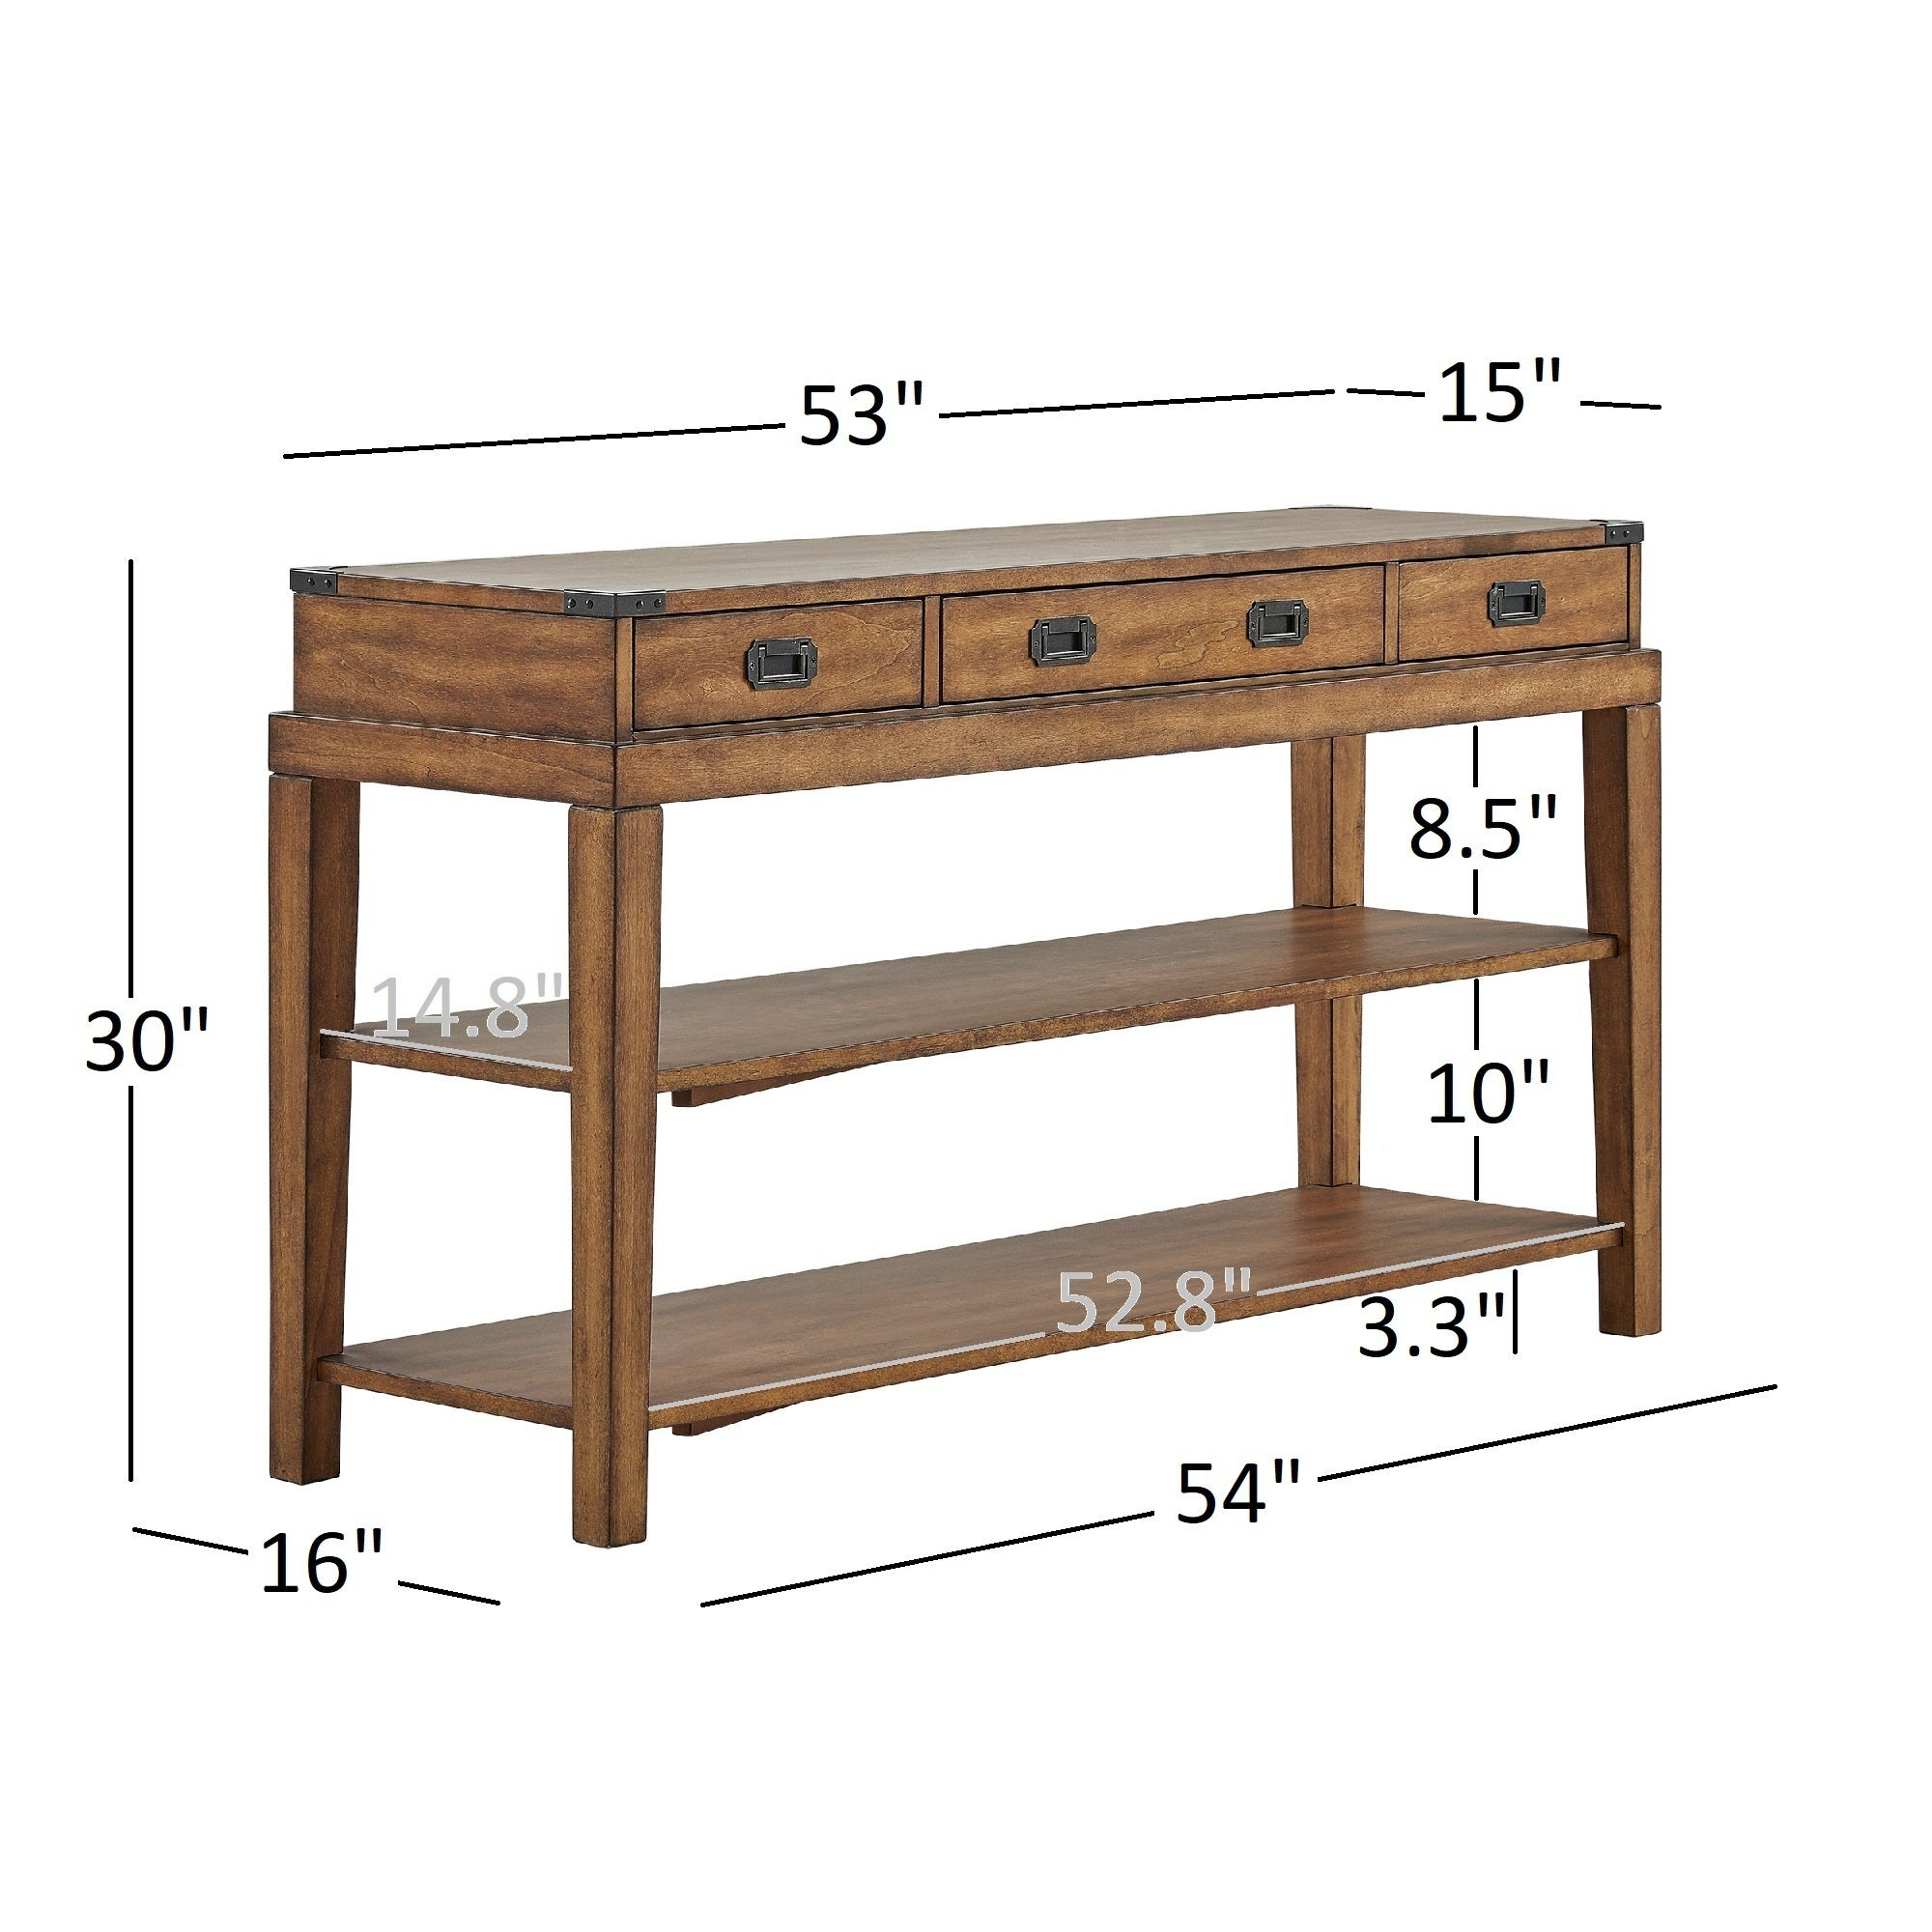 Lonny 3Drawer Wood Console Table TV Stand by iNSPIRE Q Classic